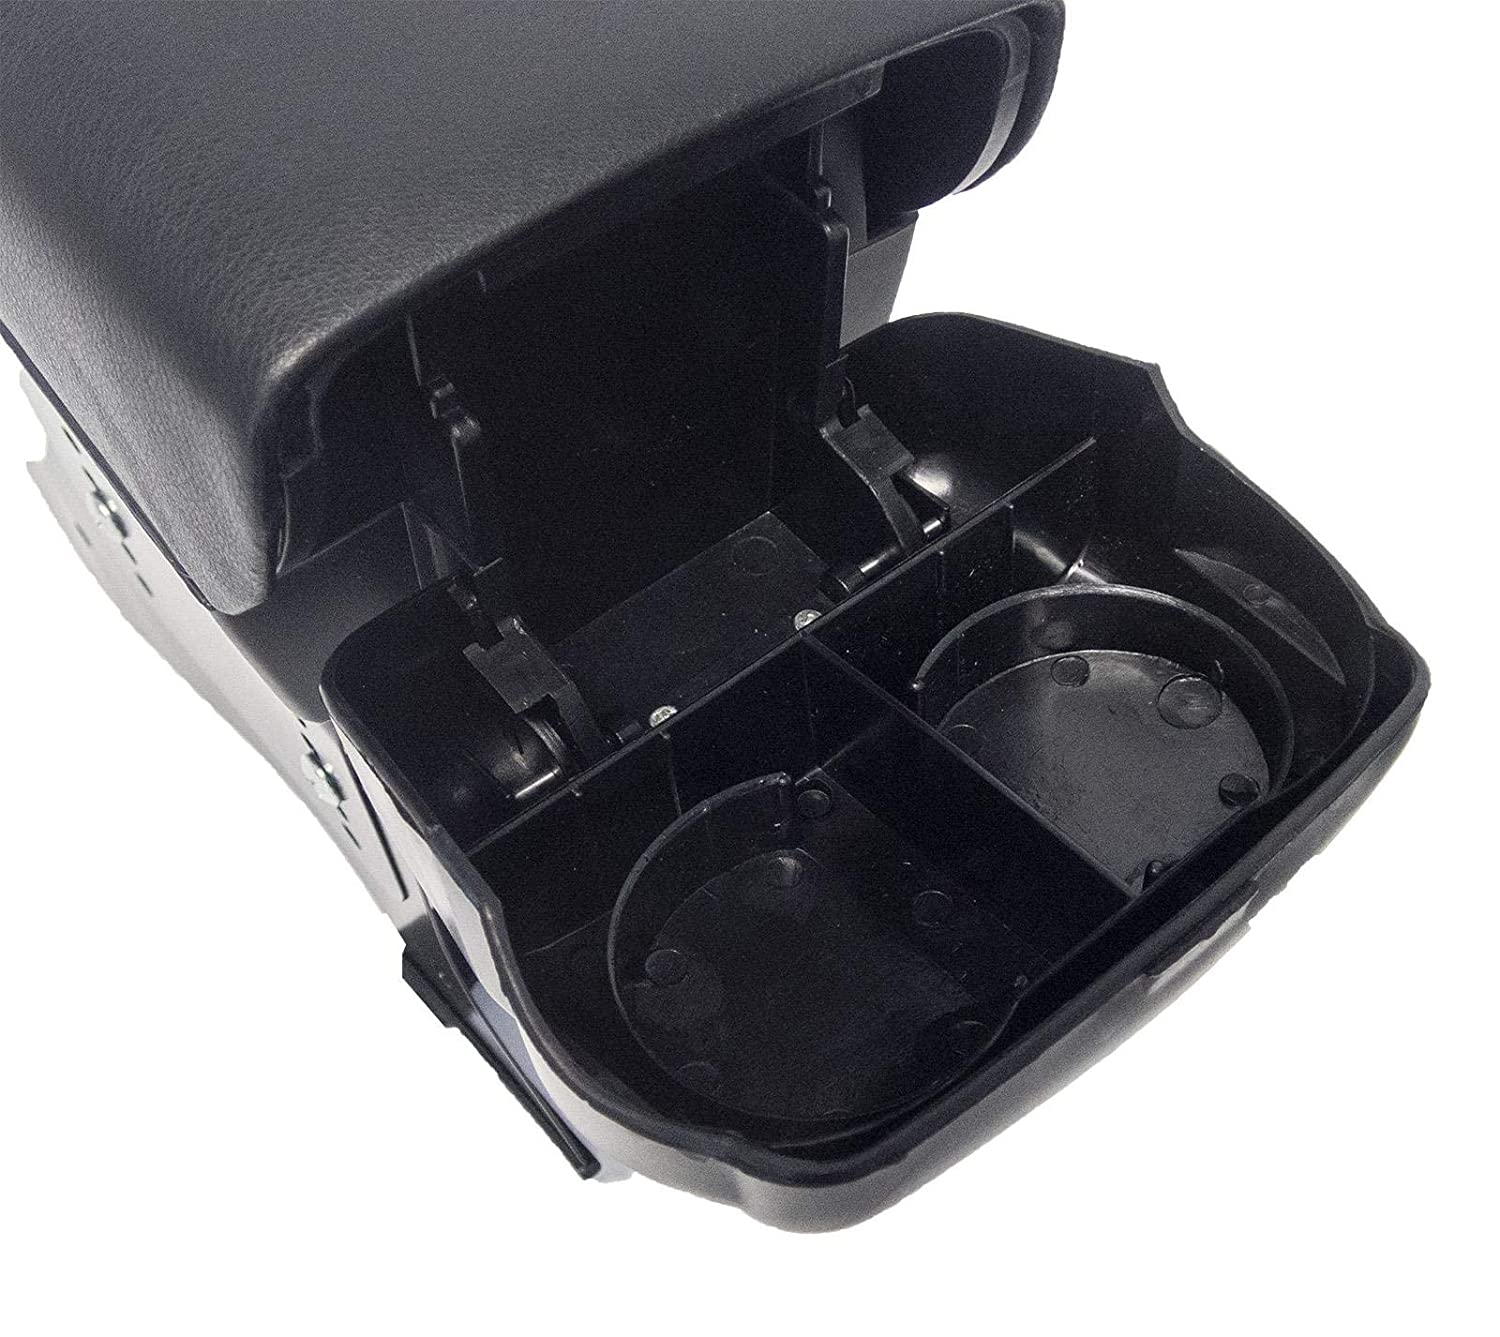 Strong And Durable UKB4C Universal Car Centre Console Black ArmRest Includes Coinholder and Drink Holder